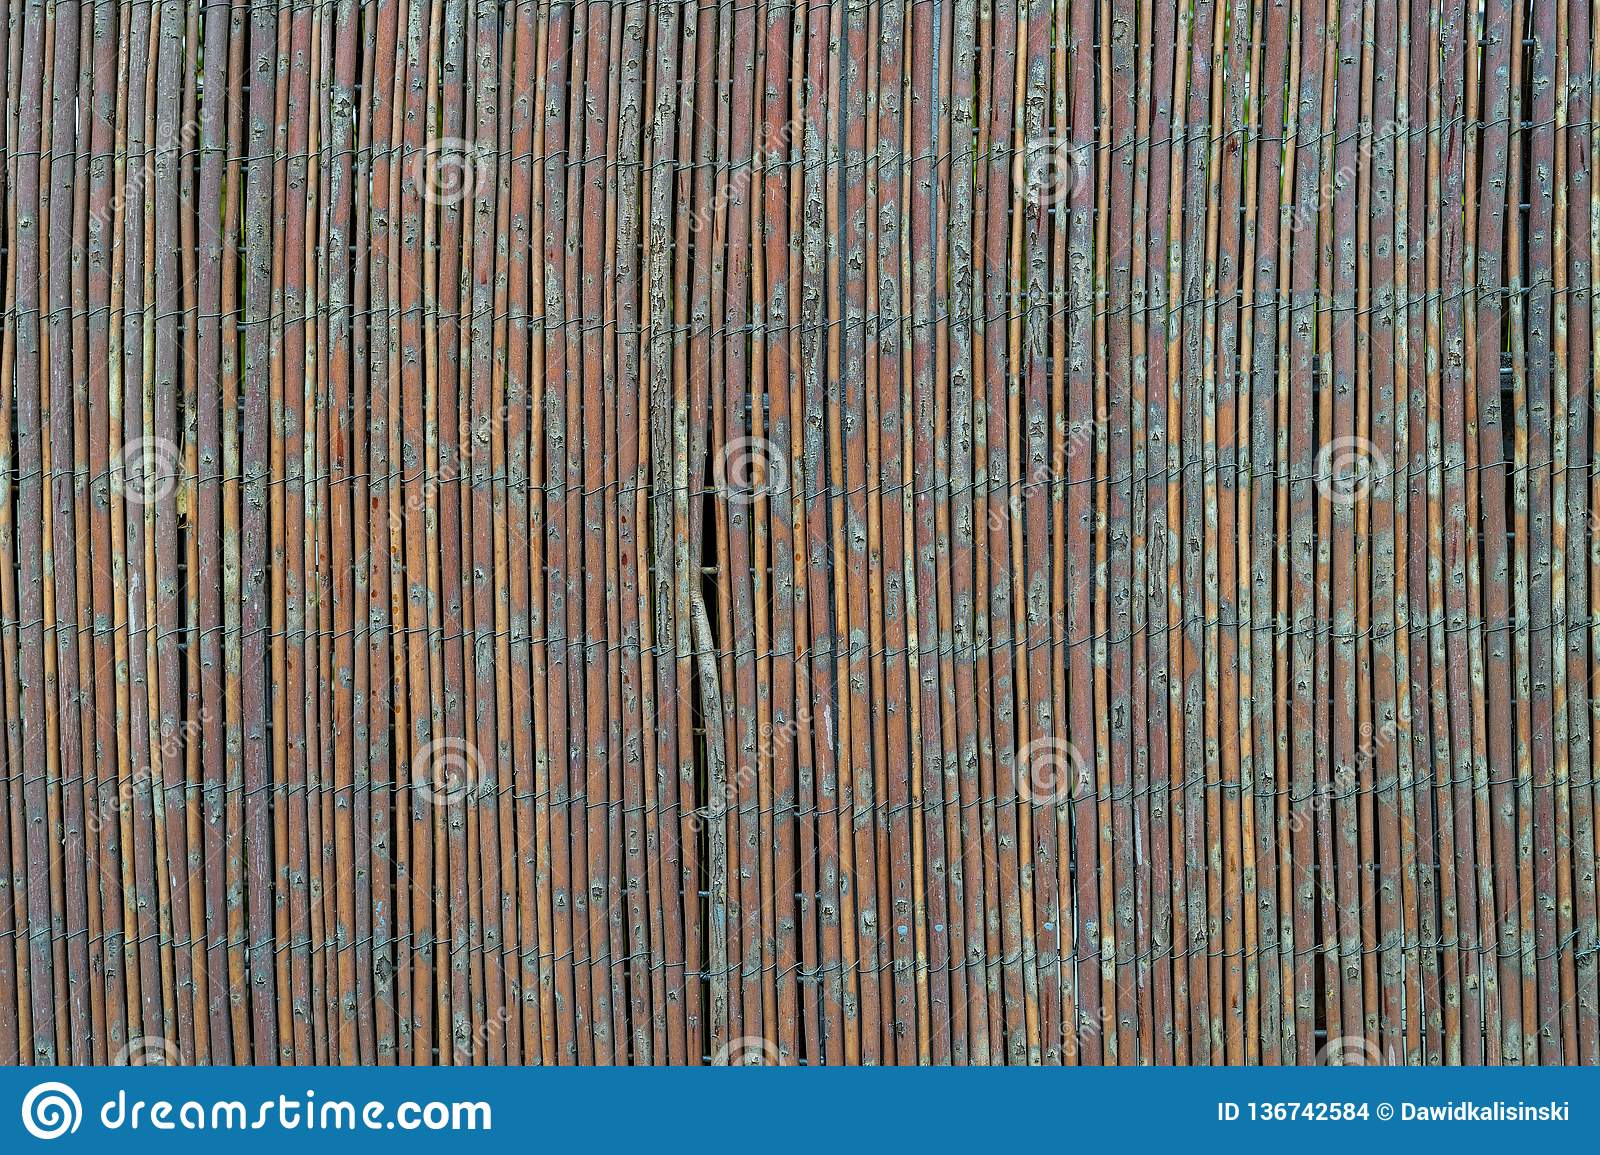 Grunge bamboo pattern - high quality texture / background